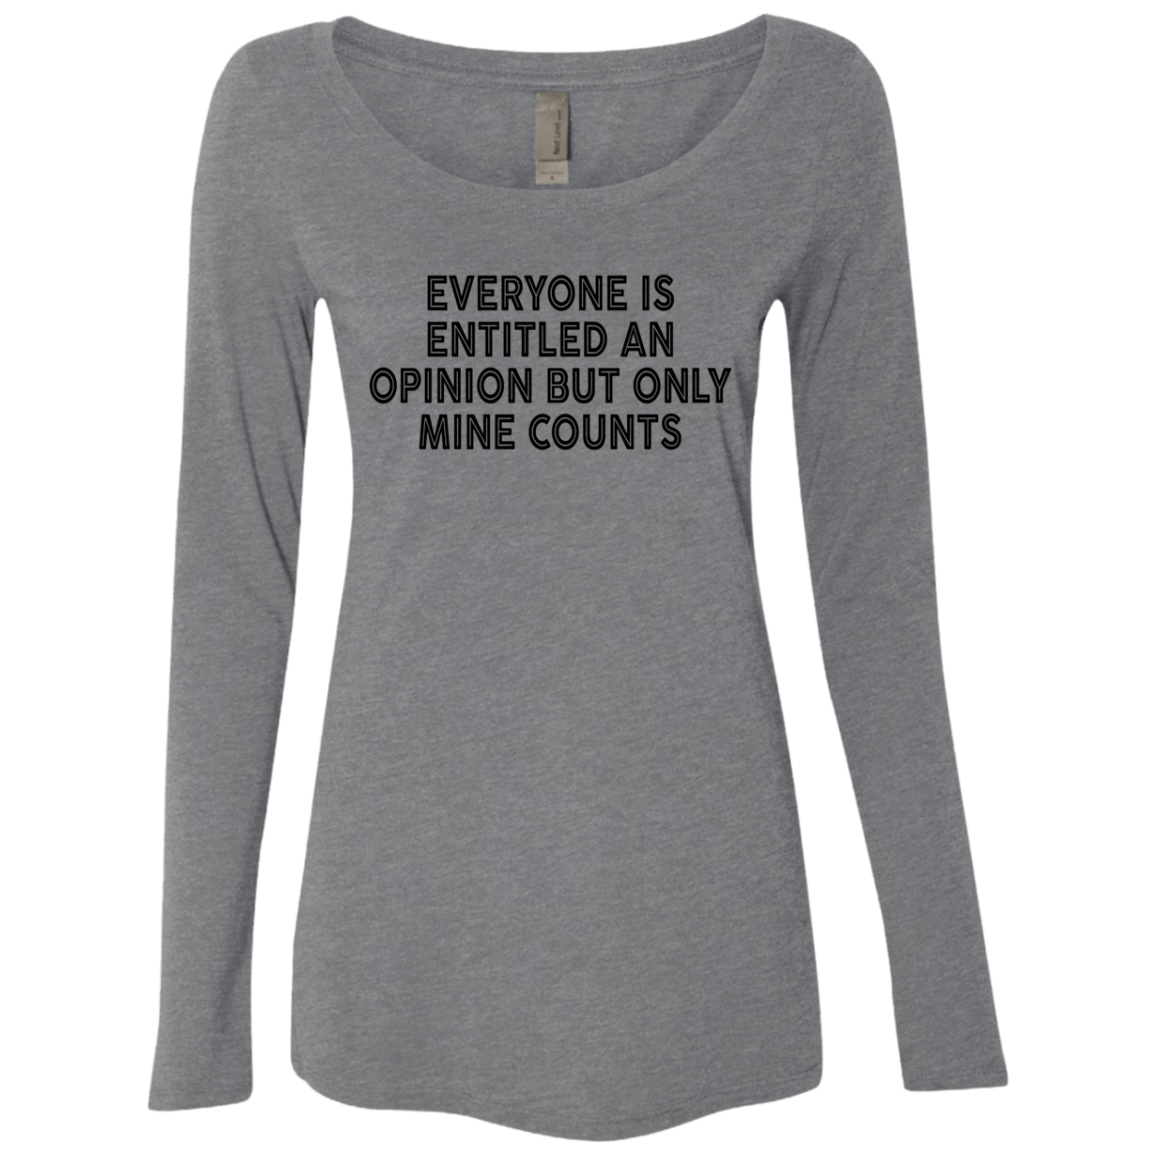 Everyone Is Entitled An Opinion But Only Mine Counts Women's Long Sleeve Tee